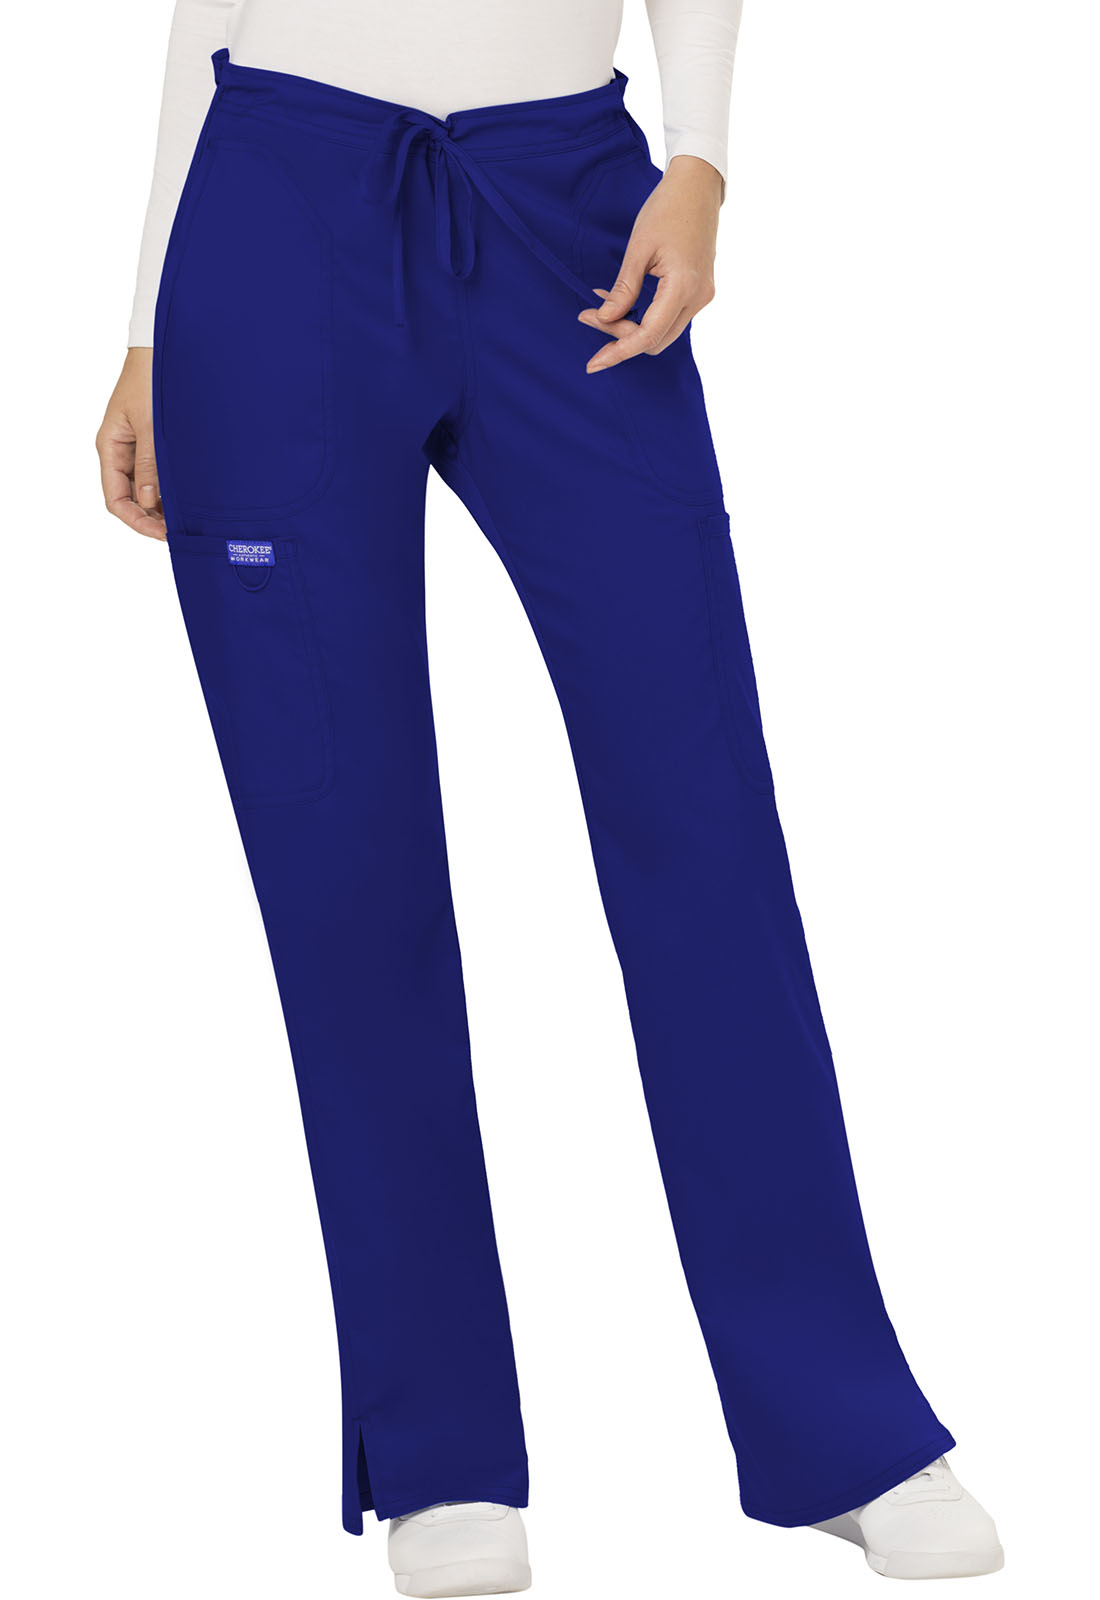 c9b5b90167e WW Revolution Mid Rise Moderate Flare Drawstring Pant in Galaxy Blue ...